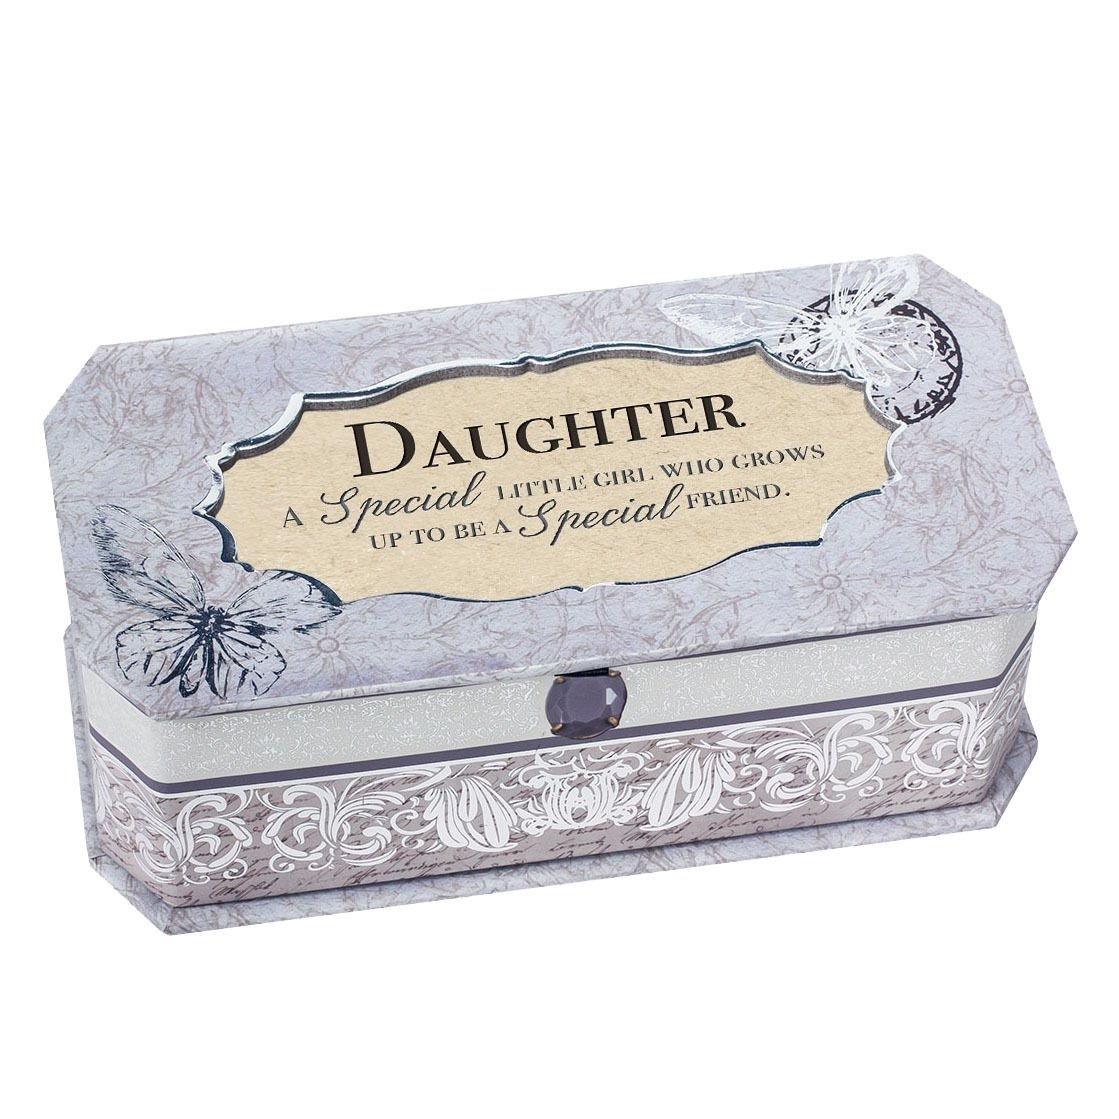 10 Most Popular 21St Birthday Gift Ideas For Daughter garden musical jewellery box gift for daughter special gifts for 2020